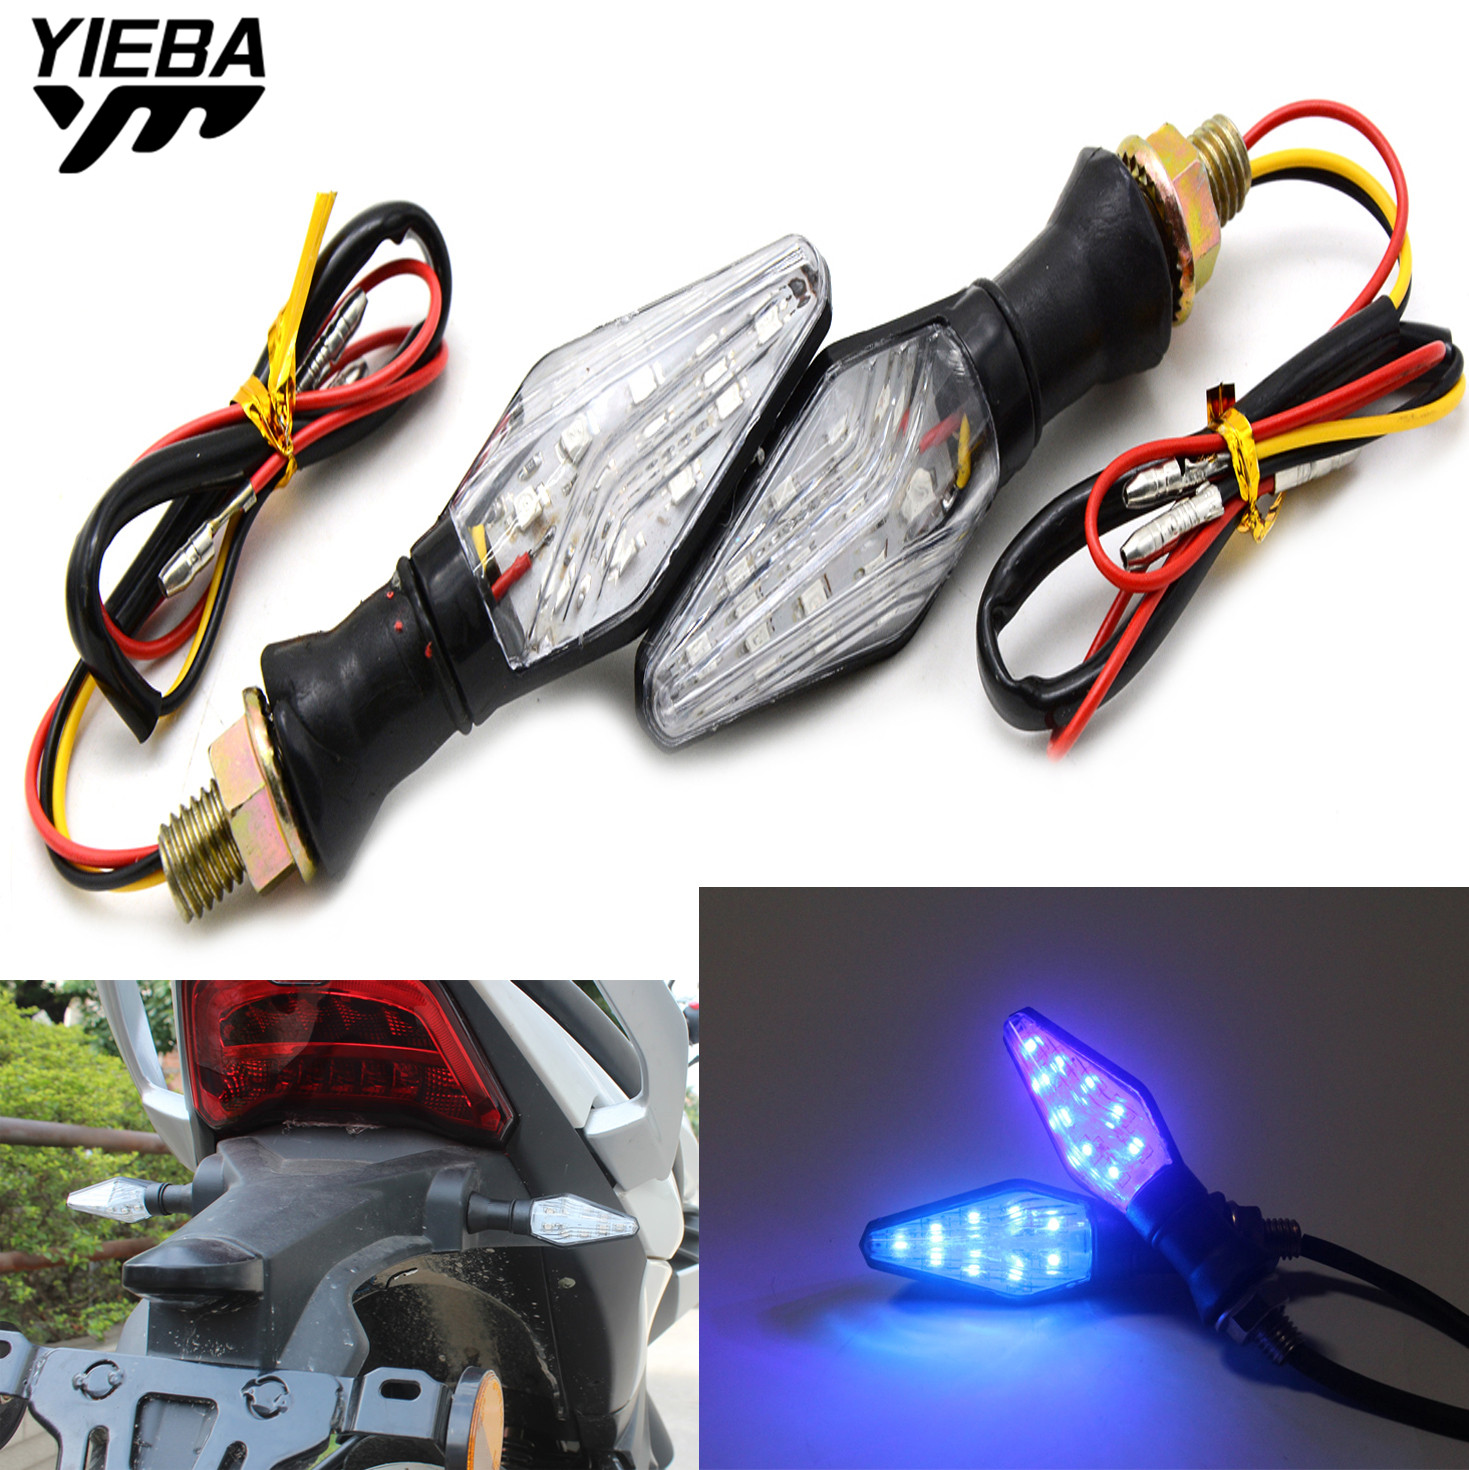 Motorcycle Turn Signal Light Flexible Led Signals Indicators Cbr600rr Wiring Diagram Universal For Honda Cbr125r Cbr1000rr 954rr Cbf1000 On Alibaba